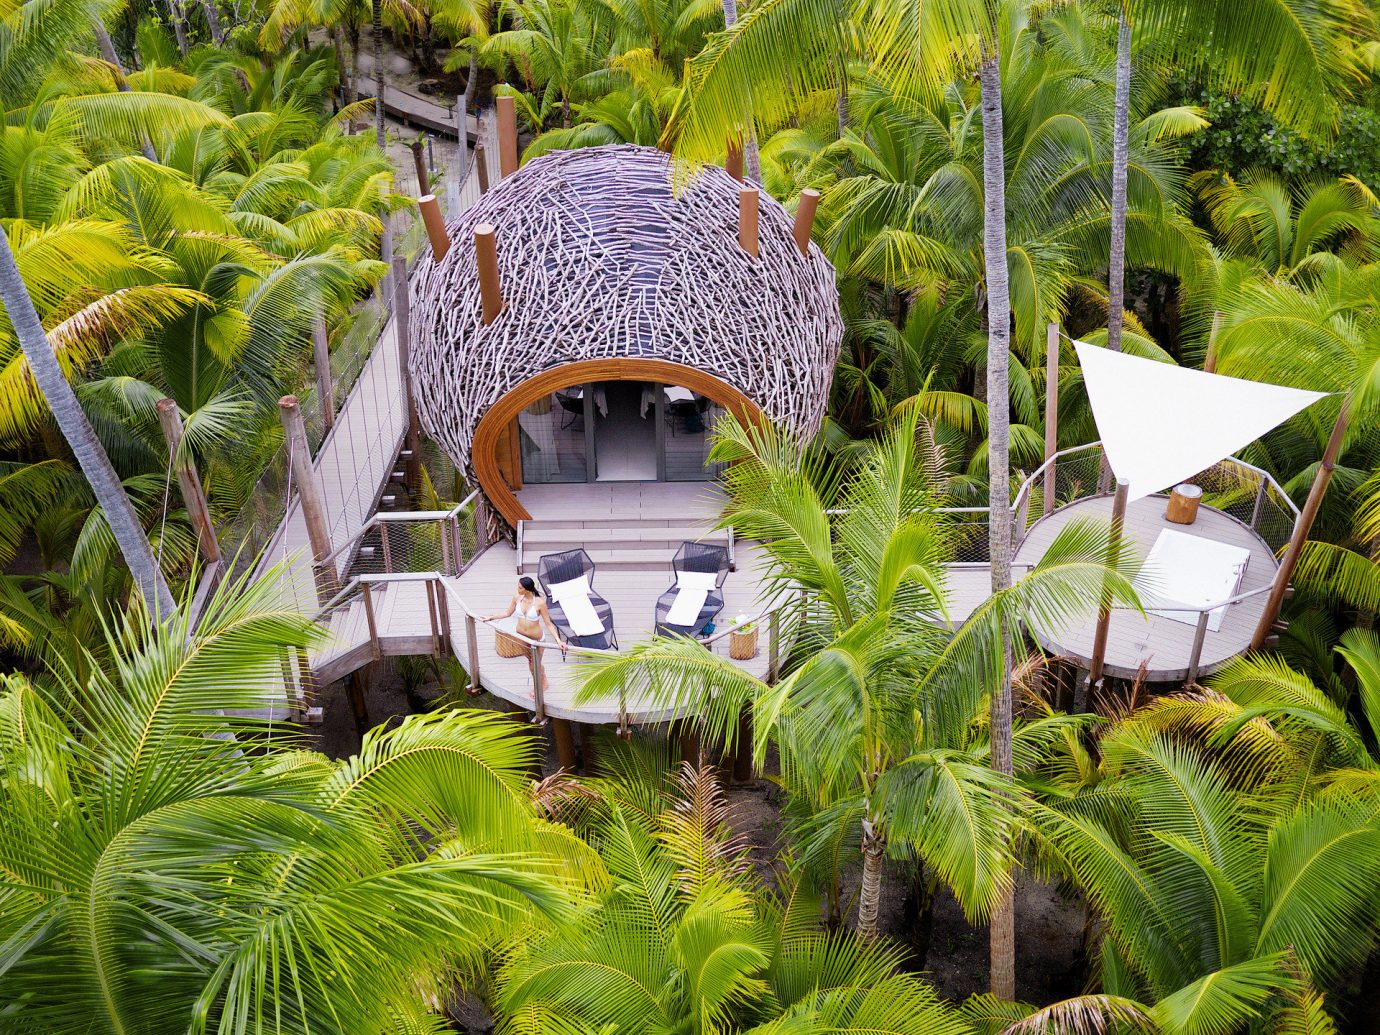 aerial Balcony calm Greenery Hotels hut isolation lounge chairs Luxury Luxury Travel open-air palm trees Patio private remote serene Terrace Tropical tree habitat outdoor natural environment ecosystem Resort botany Jungle rainforest Garden tropics arecales Forest flower botanical garden plant surrounded lush